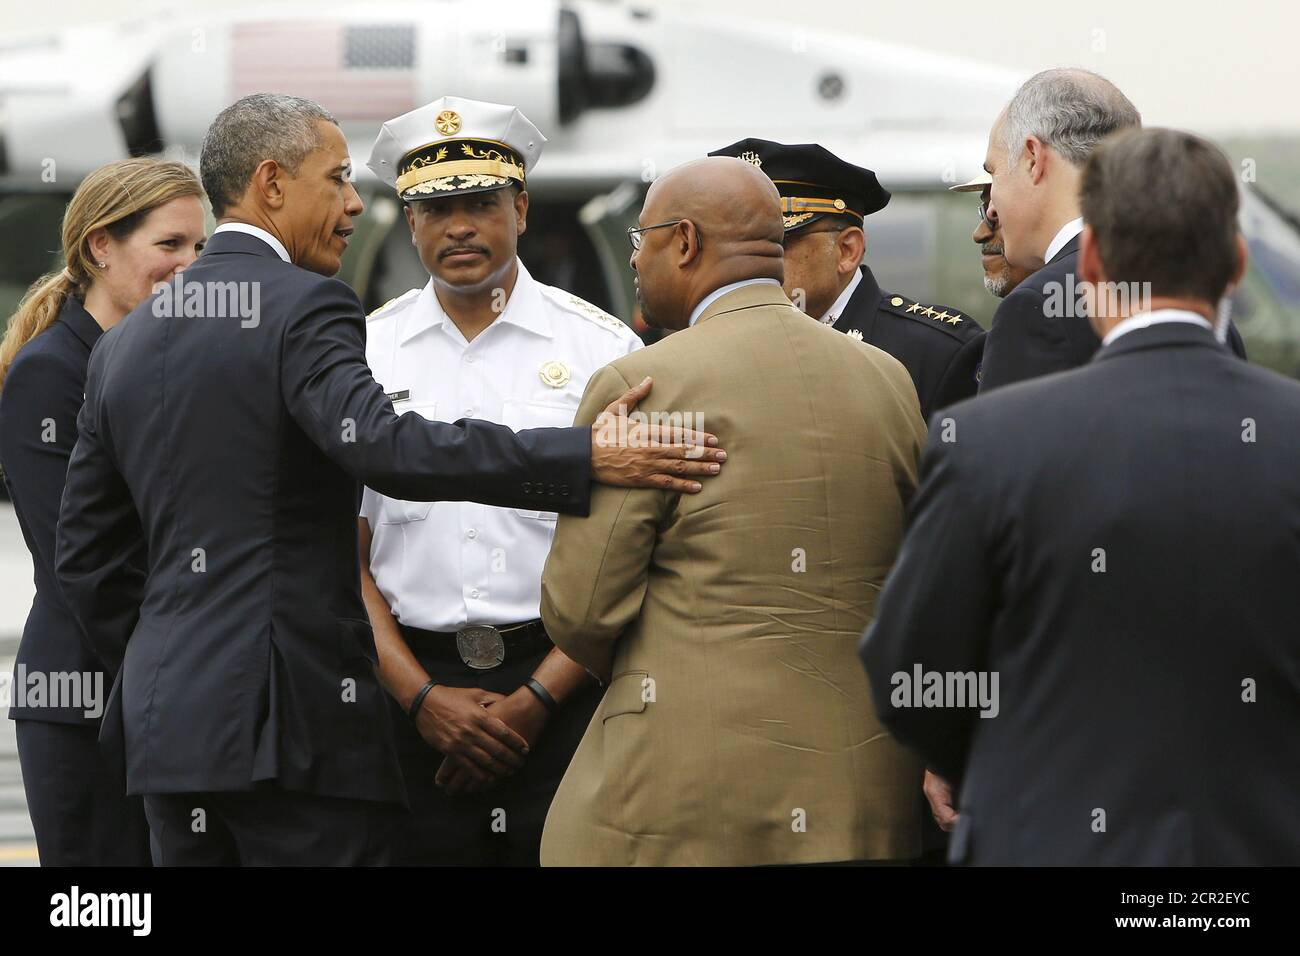 U.S. President Barack Obama (2nd L) talks with Philadelphia Mayor Michael Nutter (brown suit, center R) about the city's response after the derailment of an Amtrak train last week, as Obama arrives aboard Air Force One at Philadelphia International Airport in Philadelphia, Pennsylvania May 18, 2015. Obama landed in Philadelphia on Monday on his way to an unrelated event in Camden, New Jersey.  REUTERS/Jonathan Ernst Stock Photo